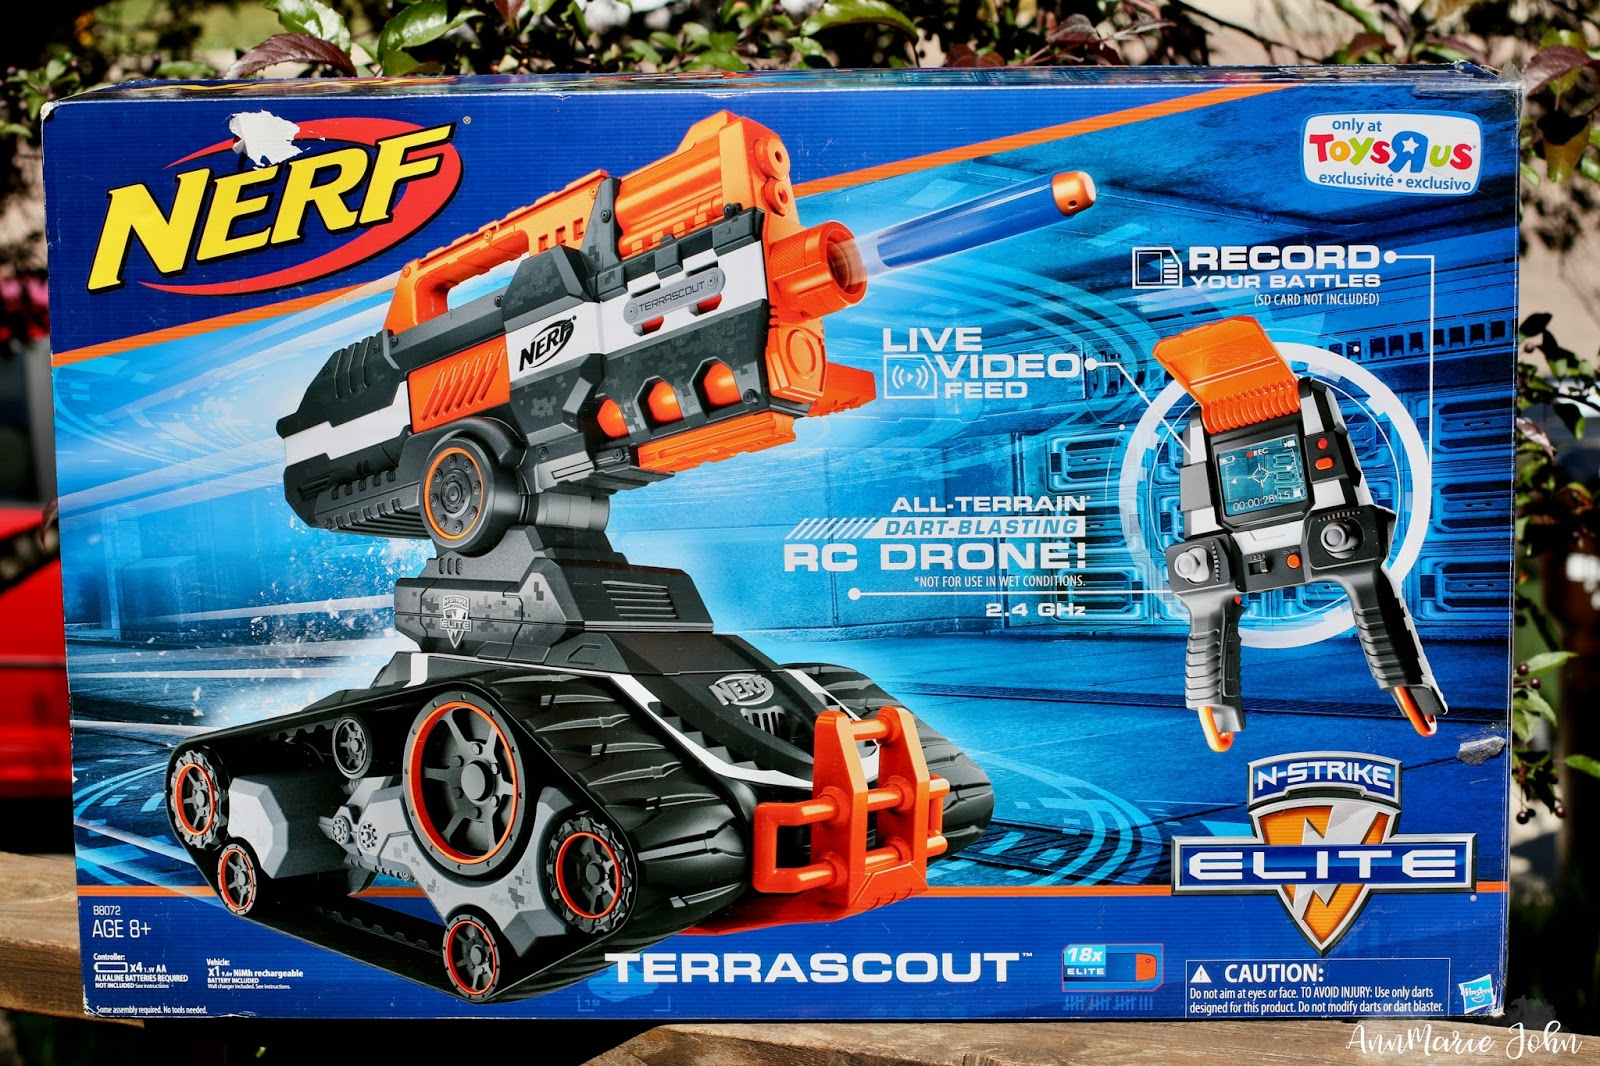 Summer Fun with Nerf Terrascout Drone